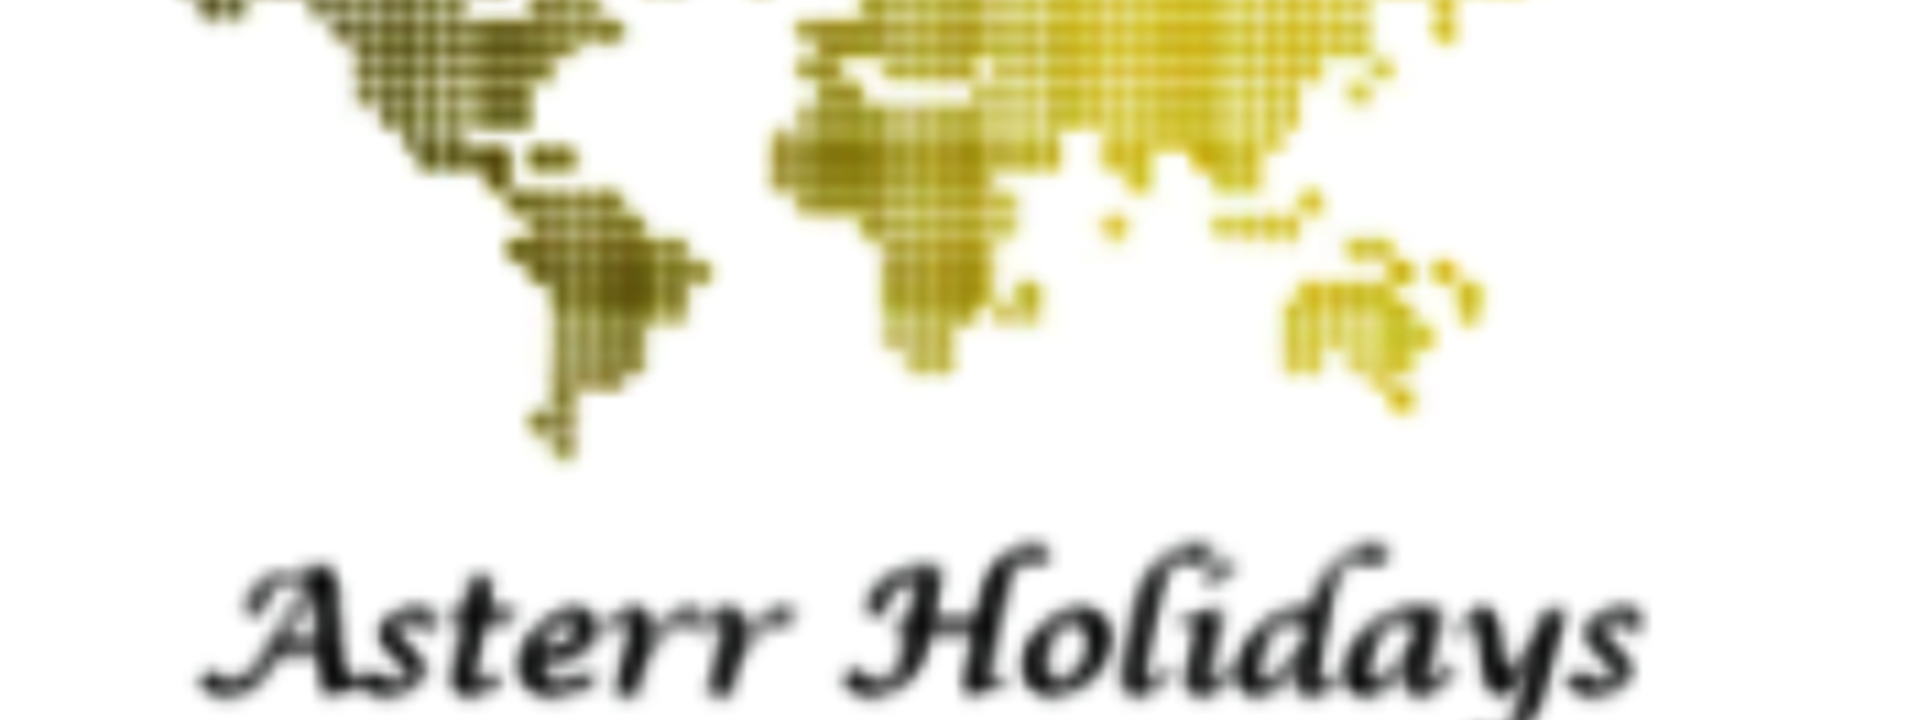 Logo: Asterr Holidays - Travel the World